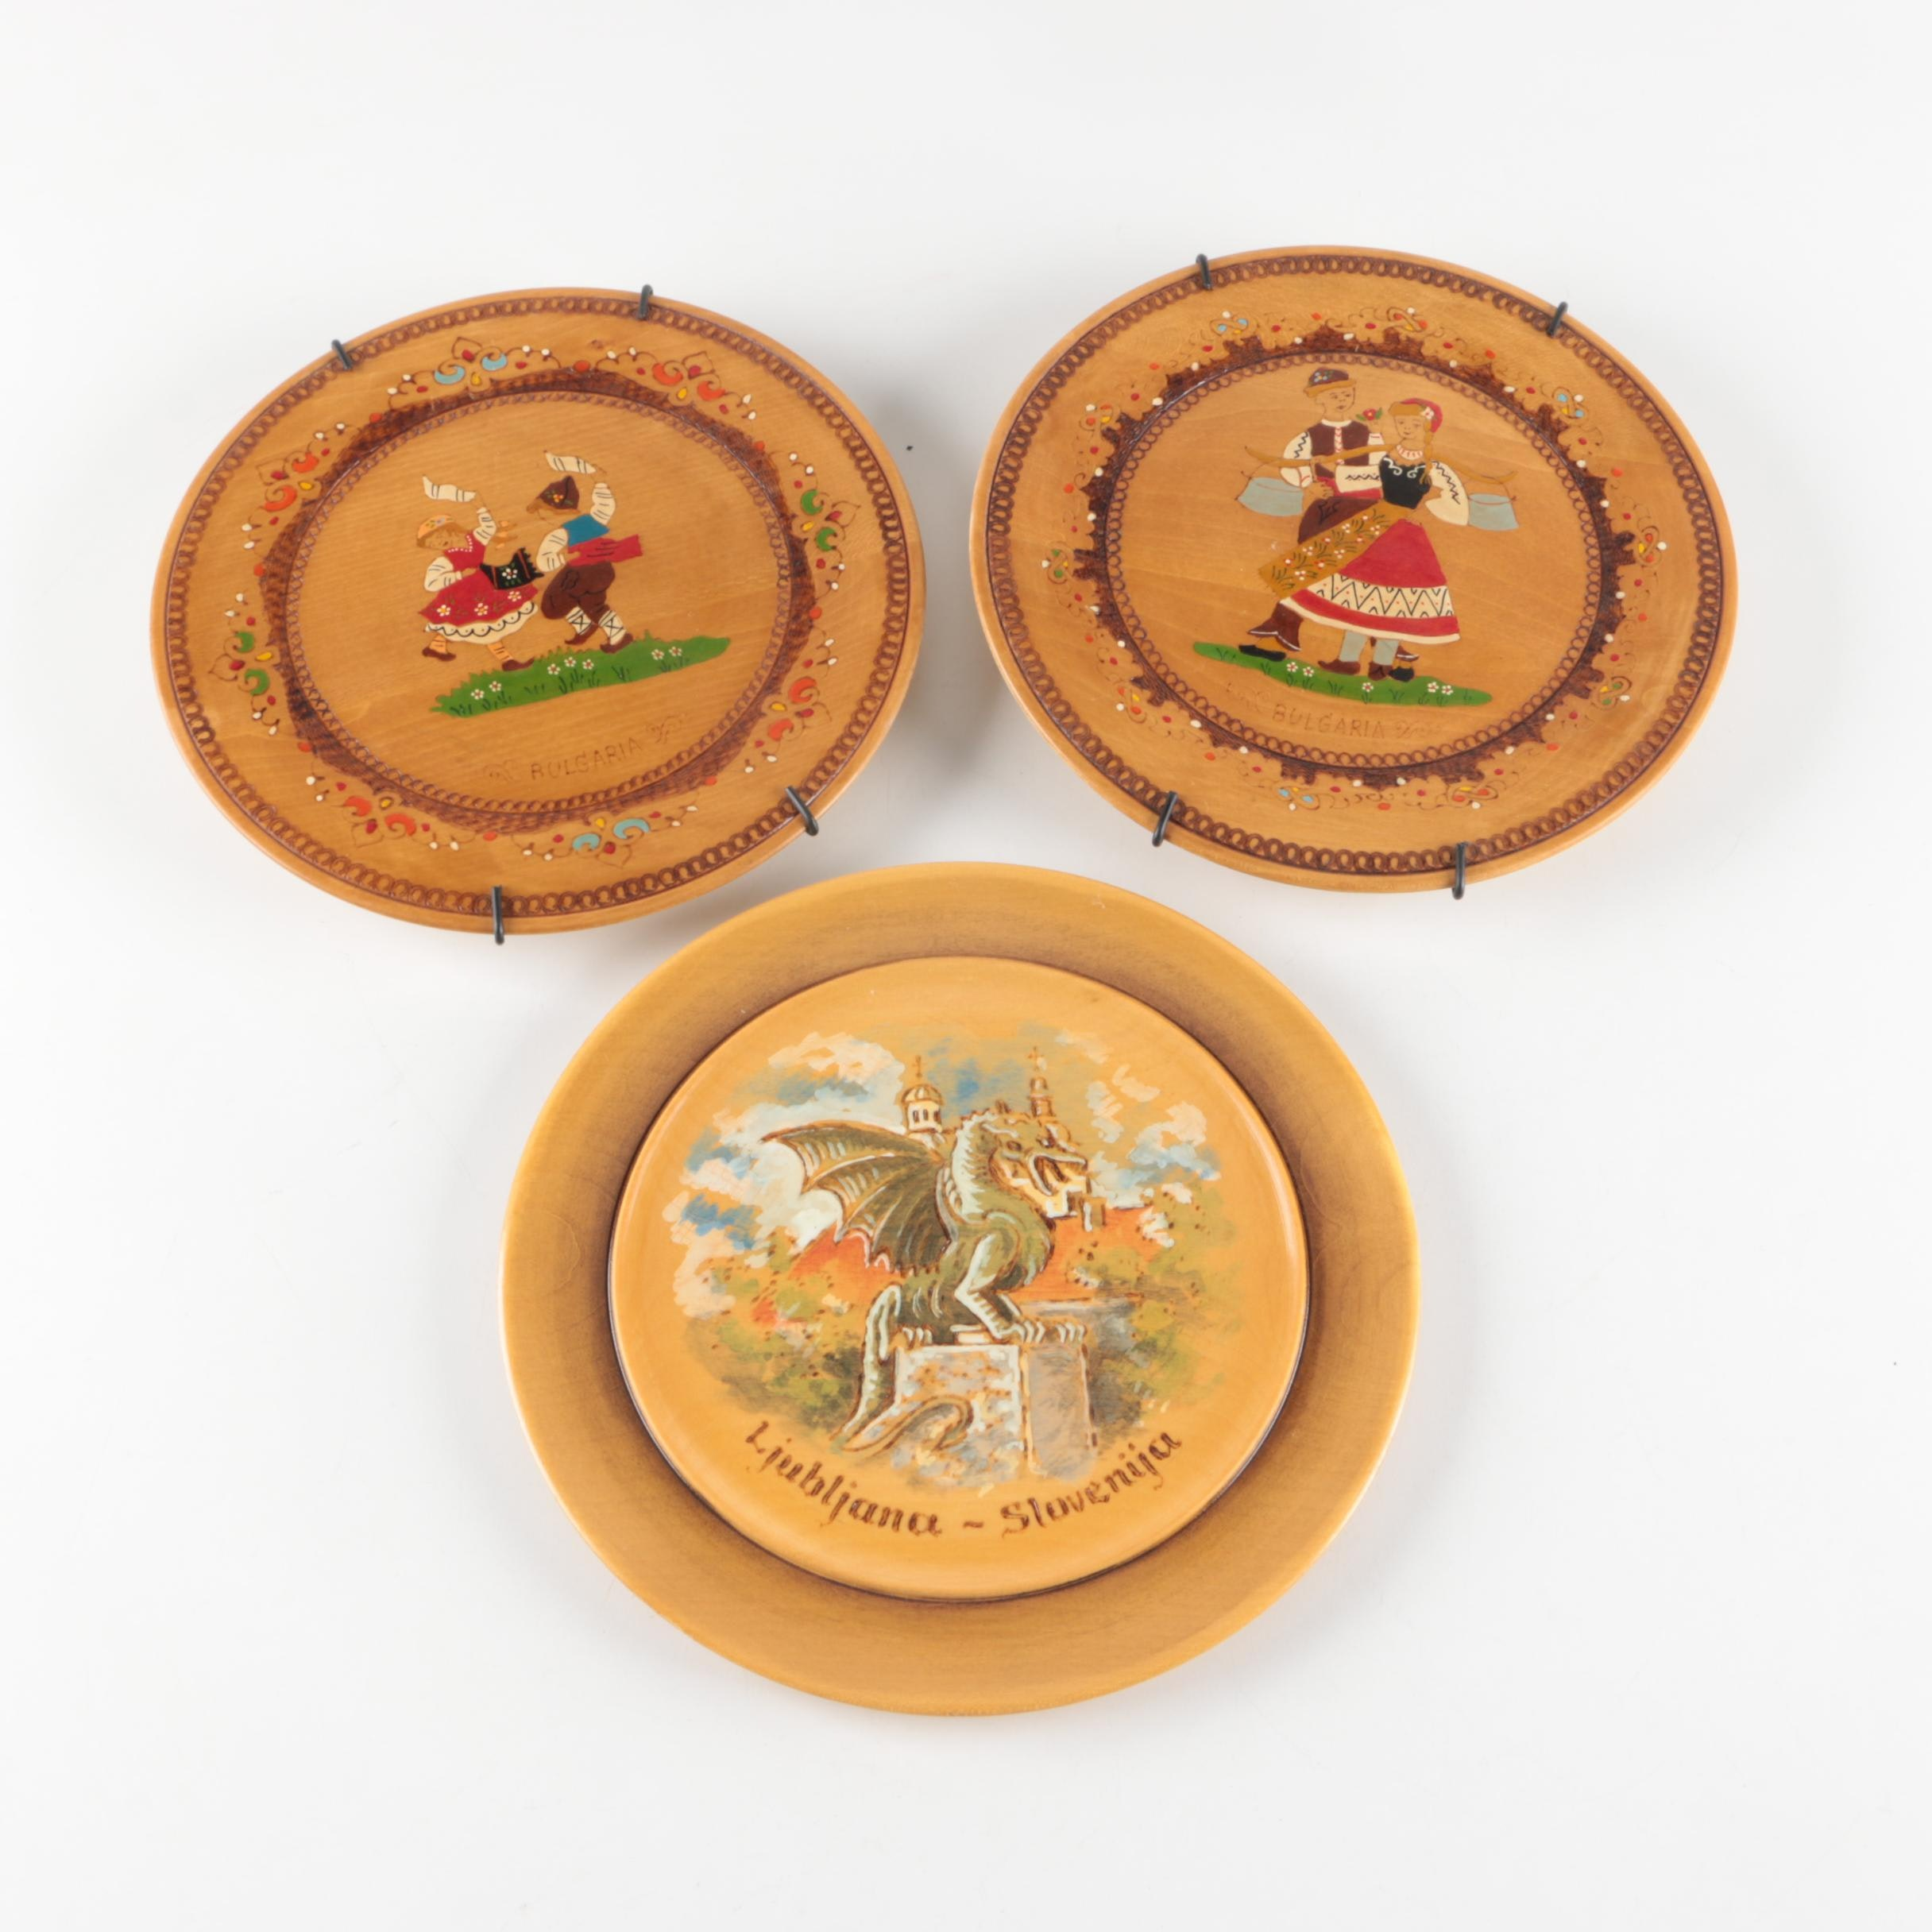 Hand-Painted Wooden Decorative Plates from Bulgaria and Slovenia ... & Hand-Painted Wooden Decorative Plates from Bulgaria and Slovenia : EBTH